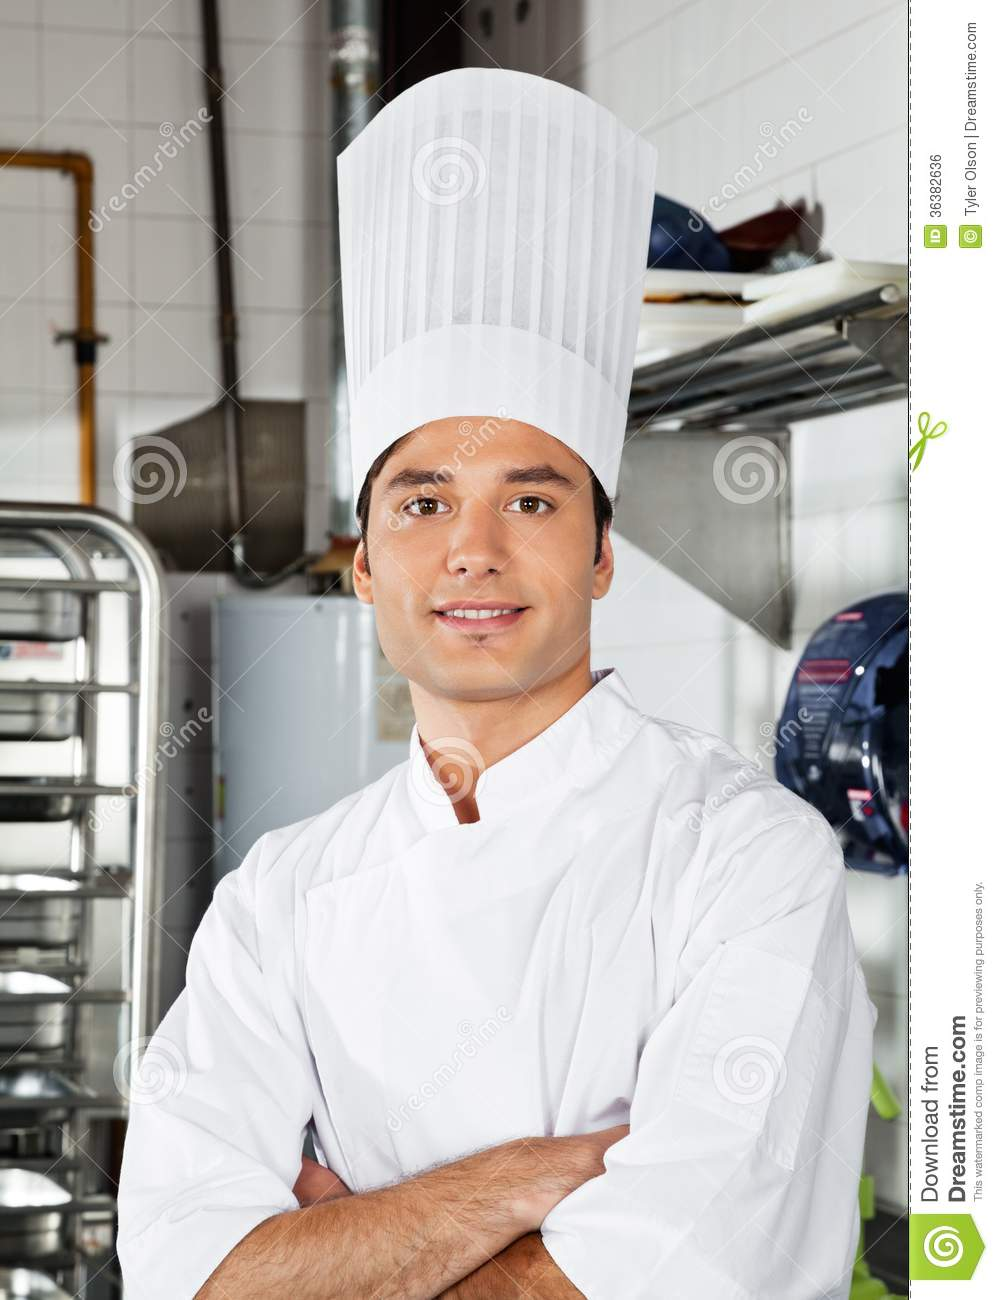 jeune chef with arms crossed dans la cuisine photo stock image du industrie confiance 36382636. Black Bedroom Furniture Sets. Home Design Ideas